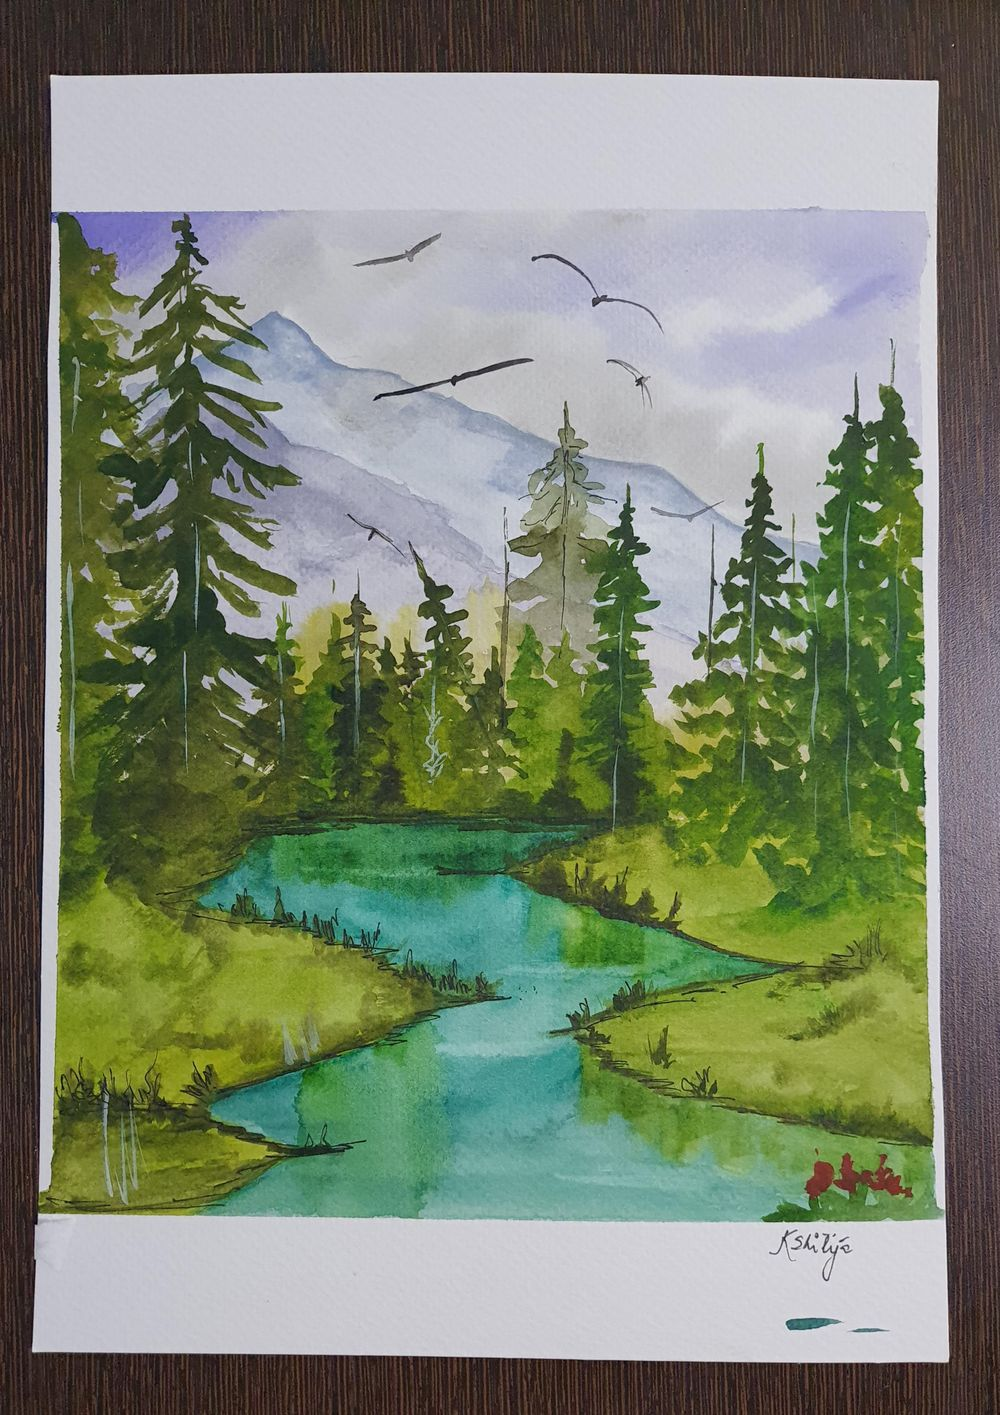 Green forests - image 3 - student project